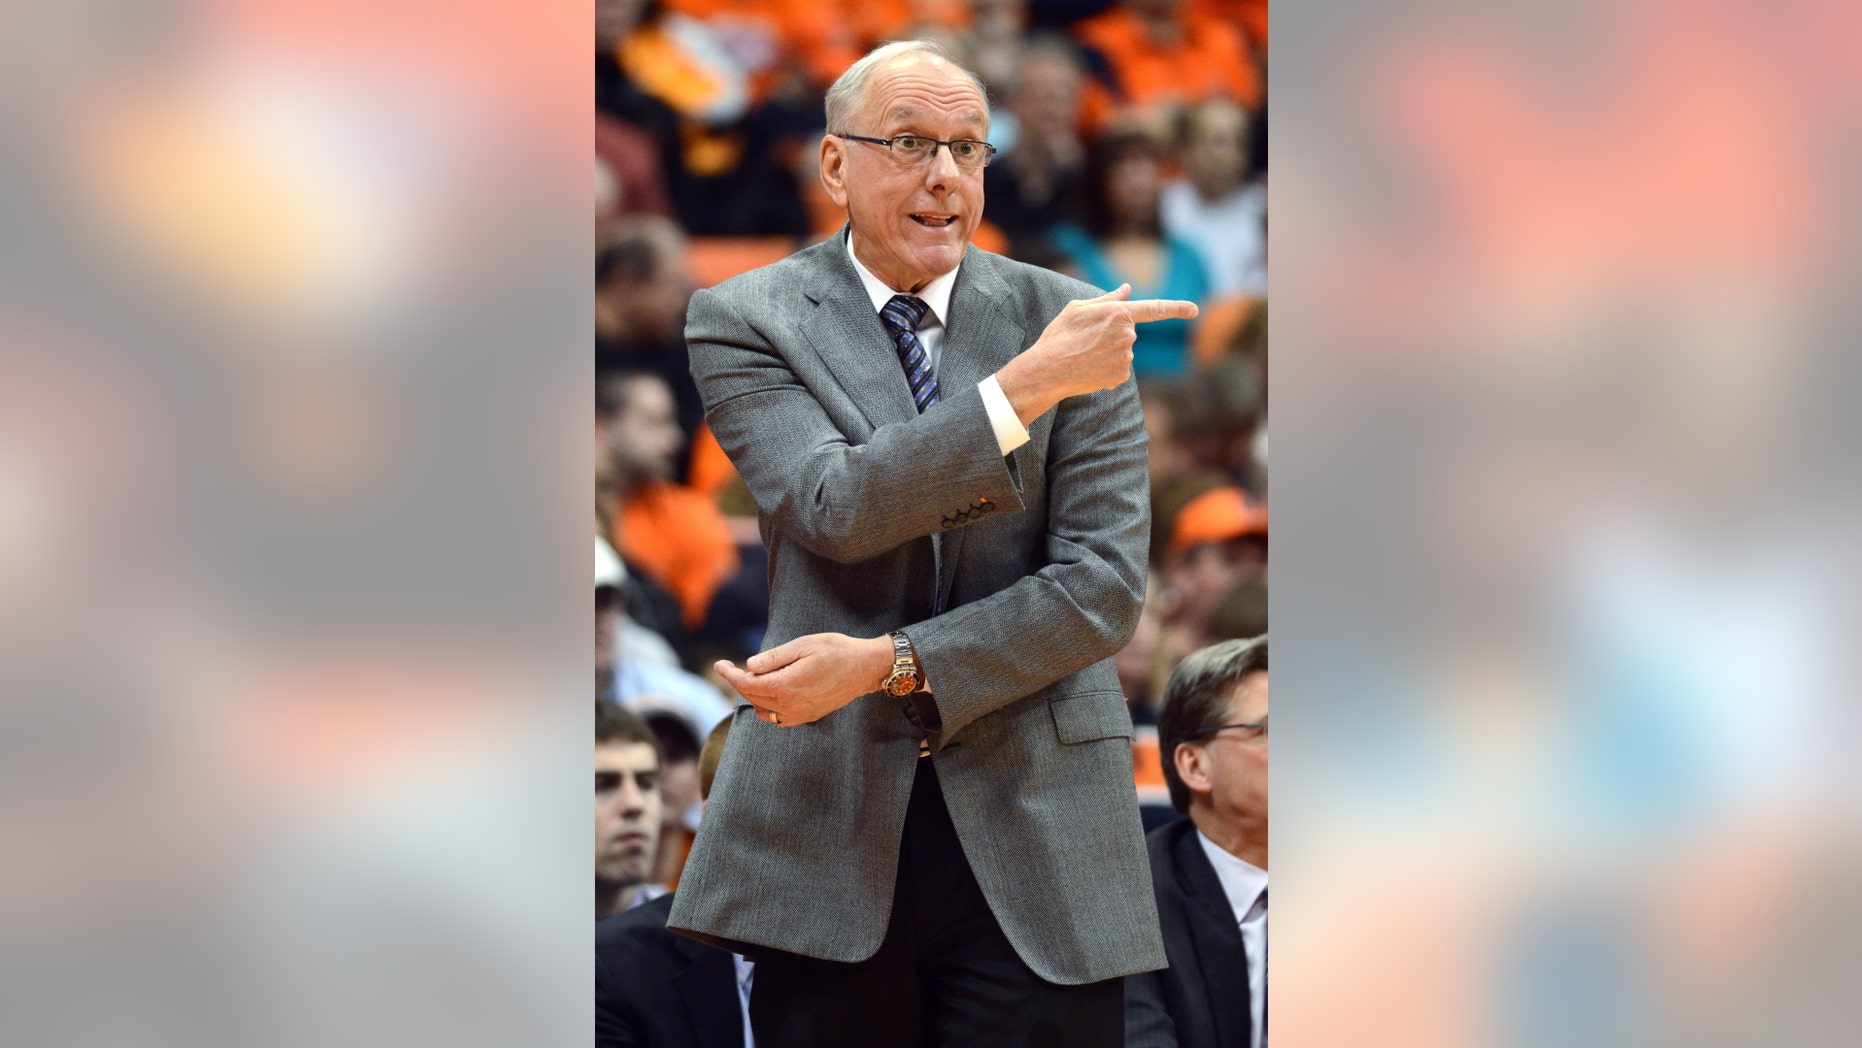 Syracuse head coach Jim Boeheim gestures to his players during the second half against Providence in an NCAA college basketball game in Syracuse, N.Y., Wednesday, Feb. 20, 2013. Syracuse won 84-59. (AP Photo/Kevin Rivoli)